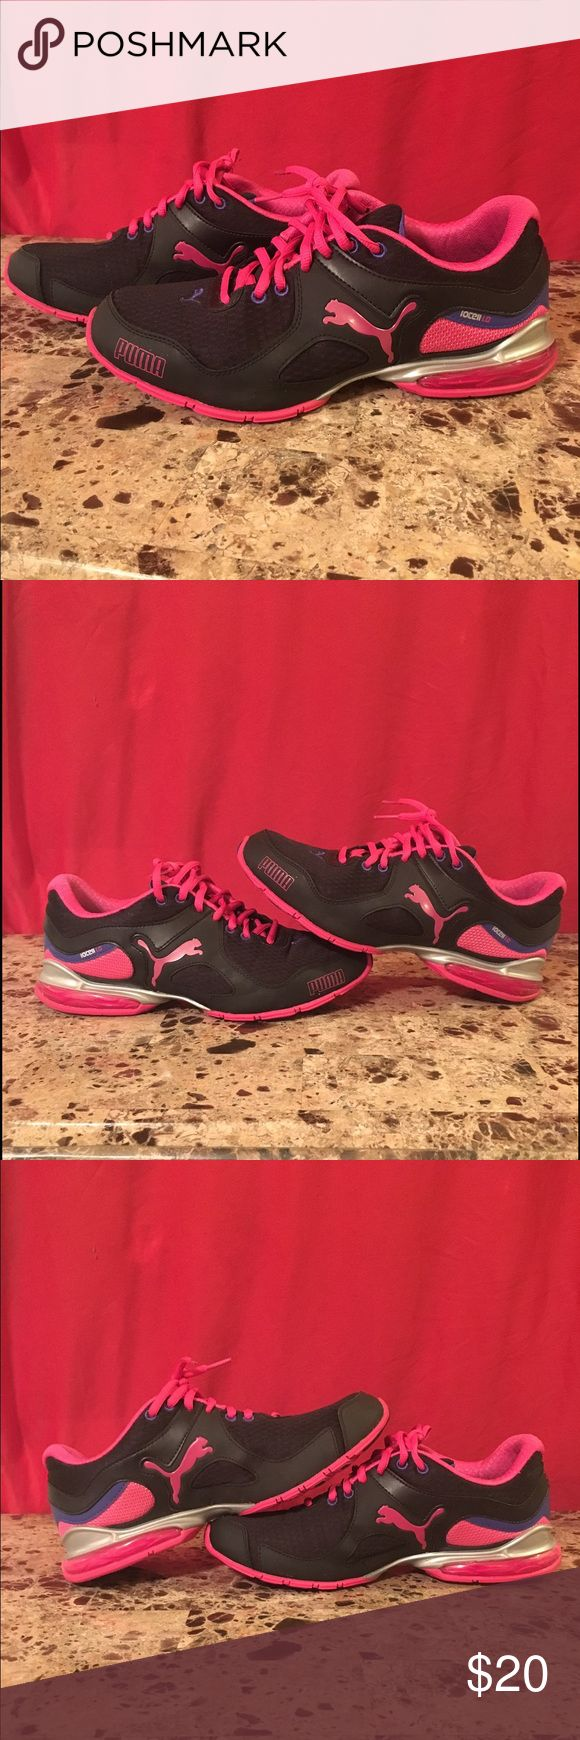 Puma athletic shoes Black and pink puma IOCELL 1.0 sneakers. In GUC. Puma Shoes Athletic Shoes